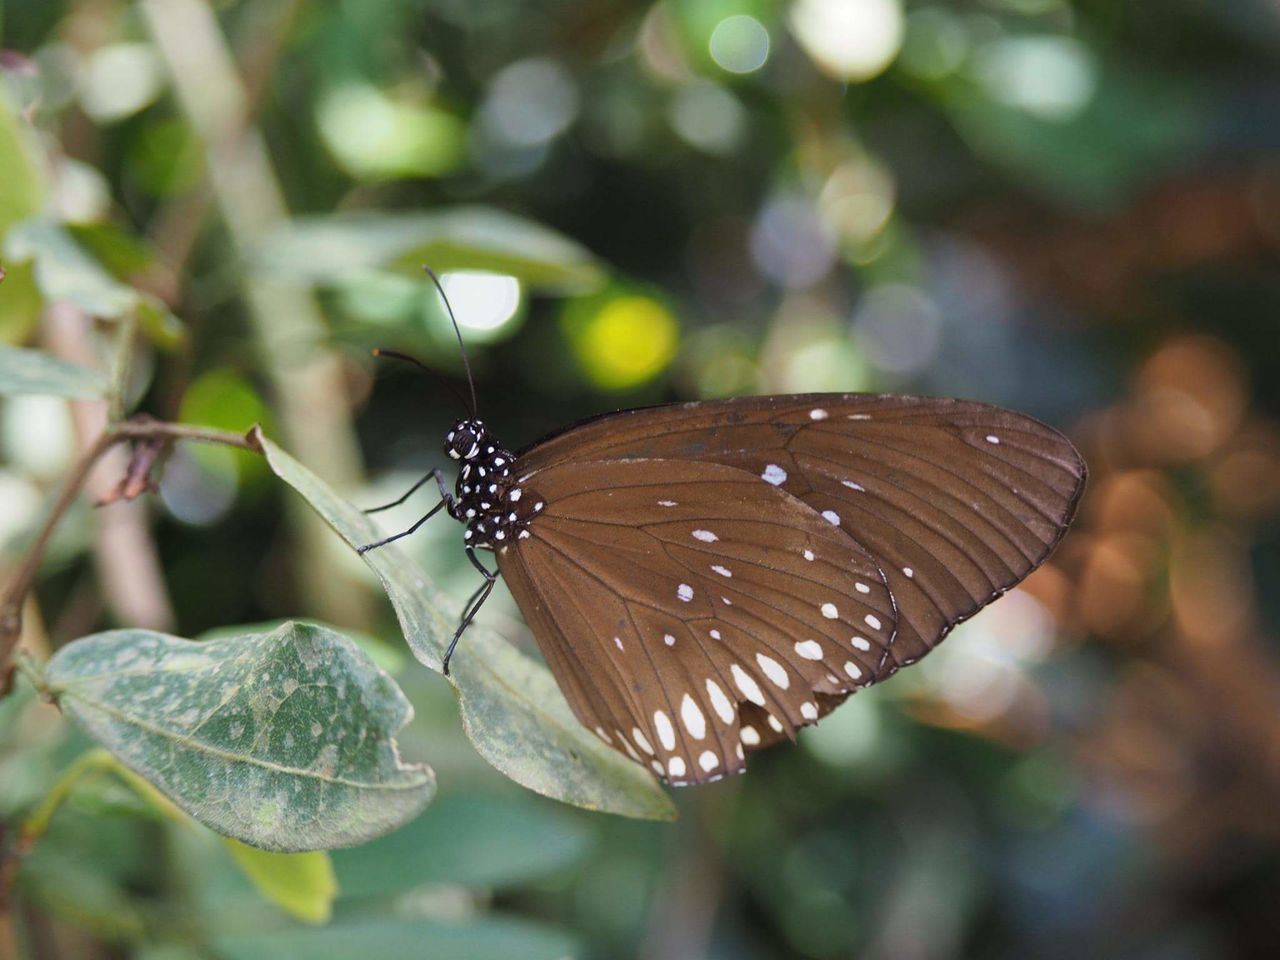 invertebrate, insect, animal wildlife, animal wing, animal, animals in the wild, animal themes, butterfly - insect, close-up, one animal, beauty in nature, focus on foreground, plant part, day, leaf, nature, plant, butterfly, no people, growth, outdoors, leaves